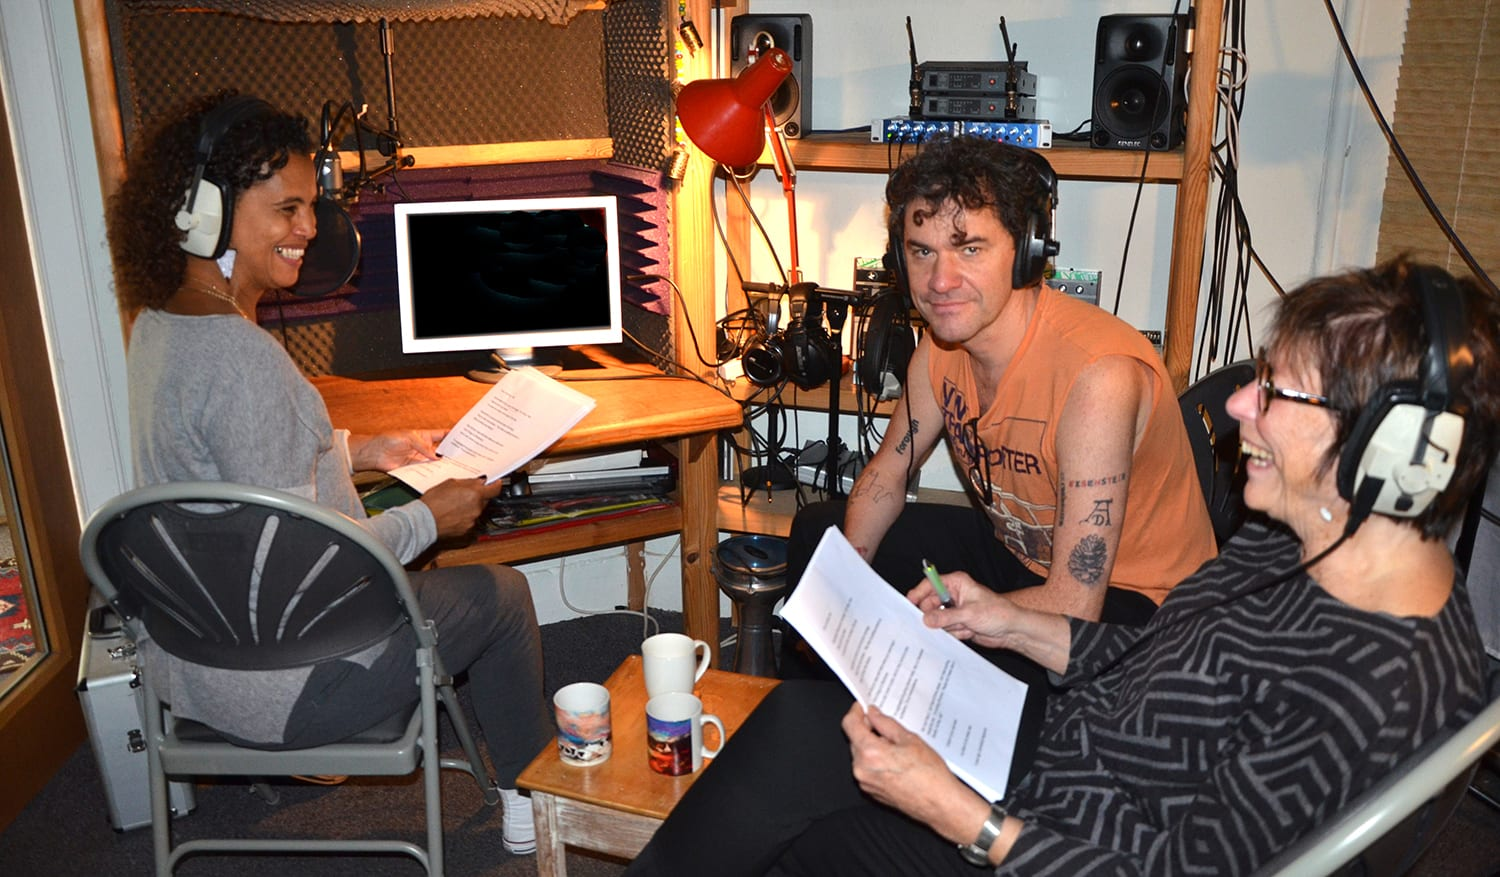 Neneh Cherry & Mark Cousins recording a Voice Over for Stockholm My Love at Offbeat Studios